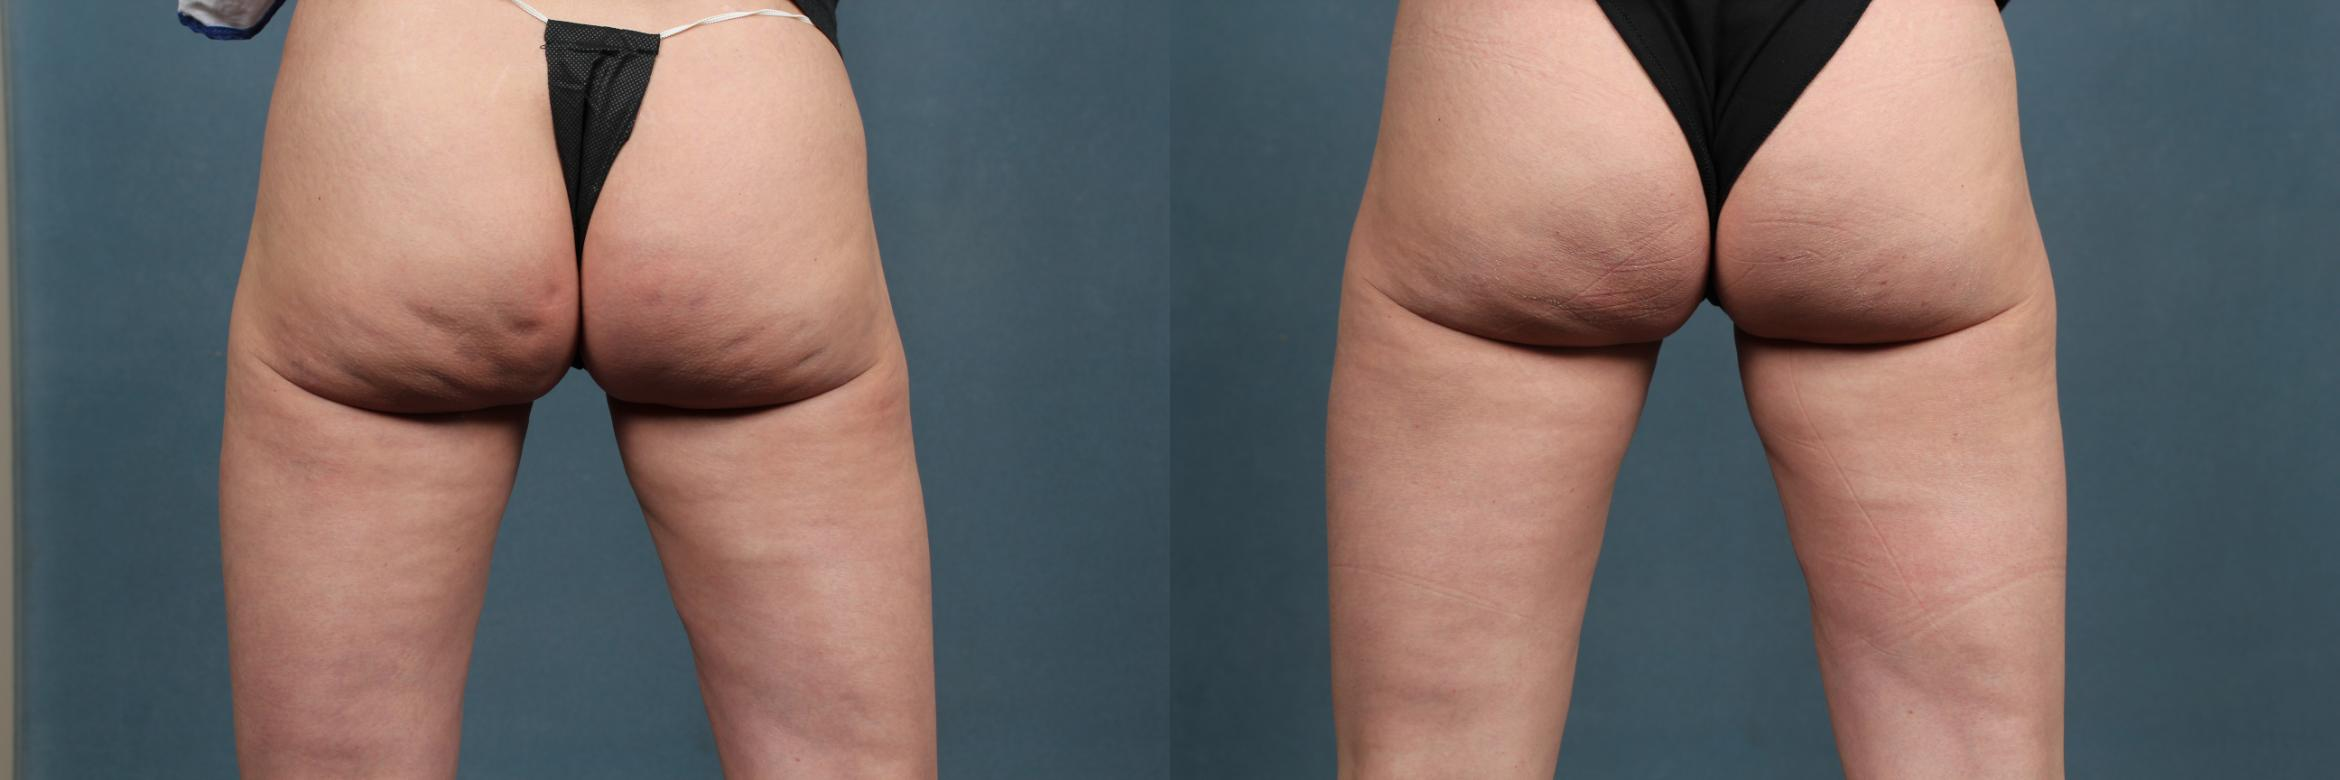 Cellulite Treatments Case 264 Before & After View #1 | Louisville, KY | CaloAesthetics® Plastic Surgery Center